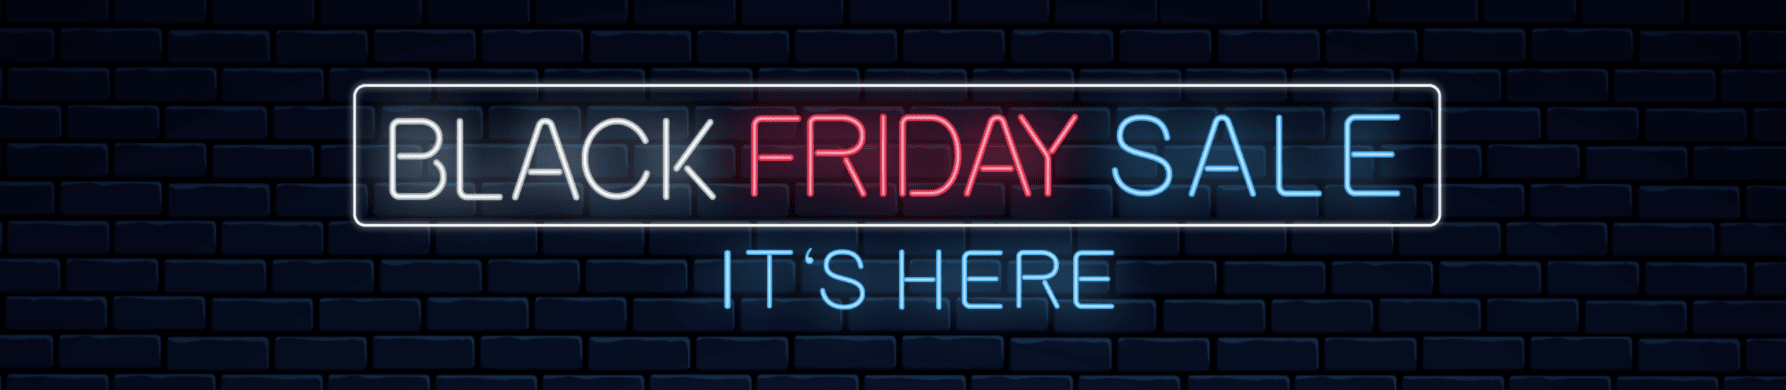 Get the most out of Black Friday!